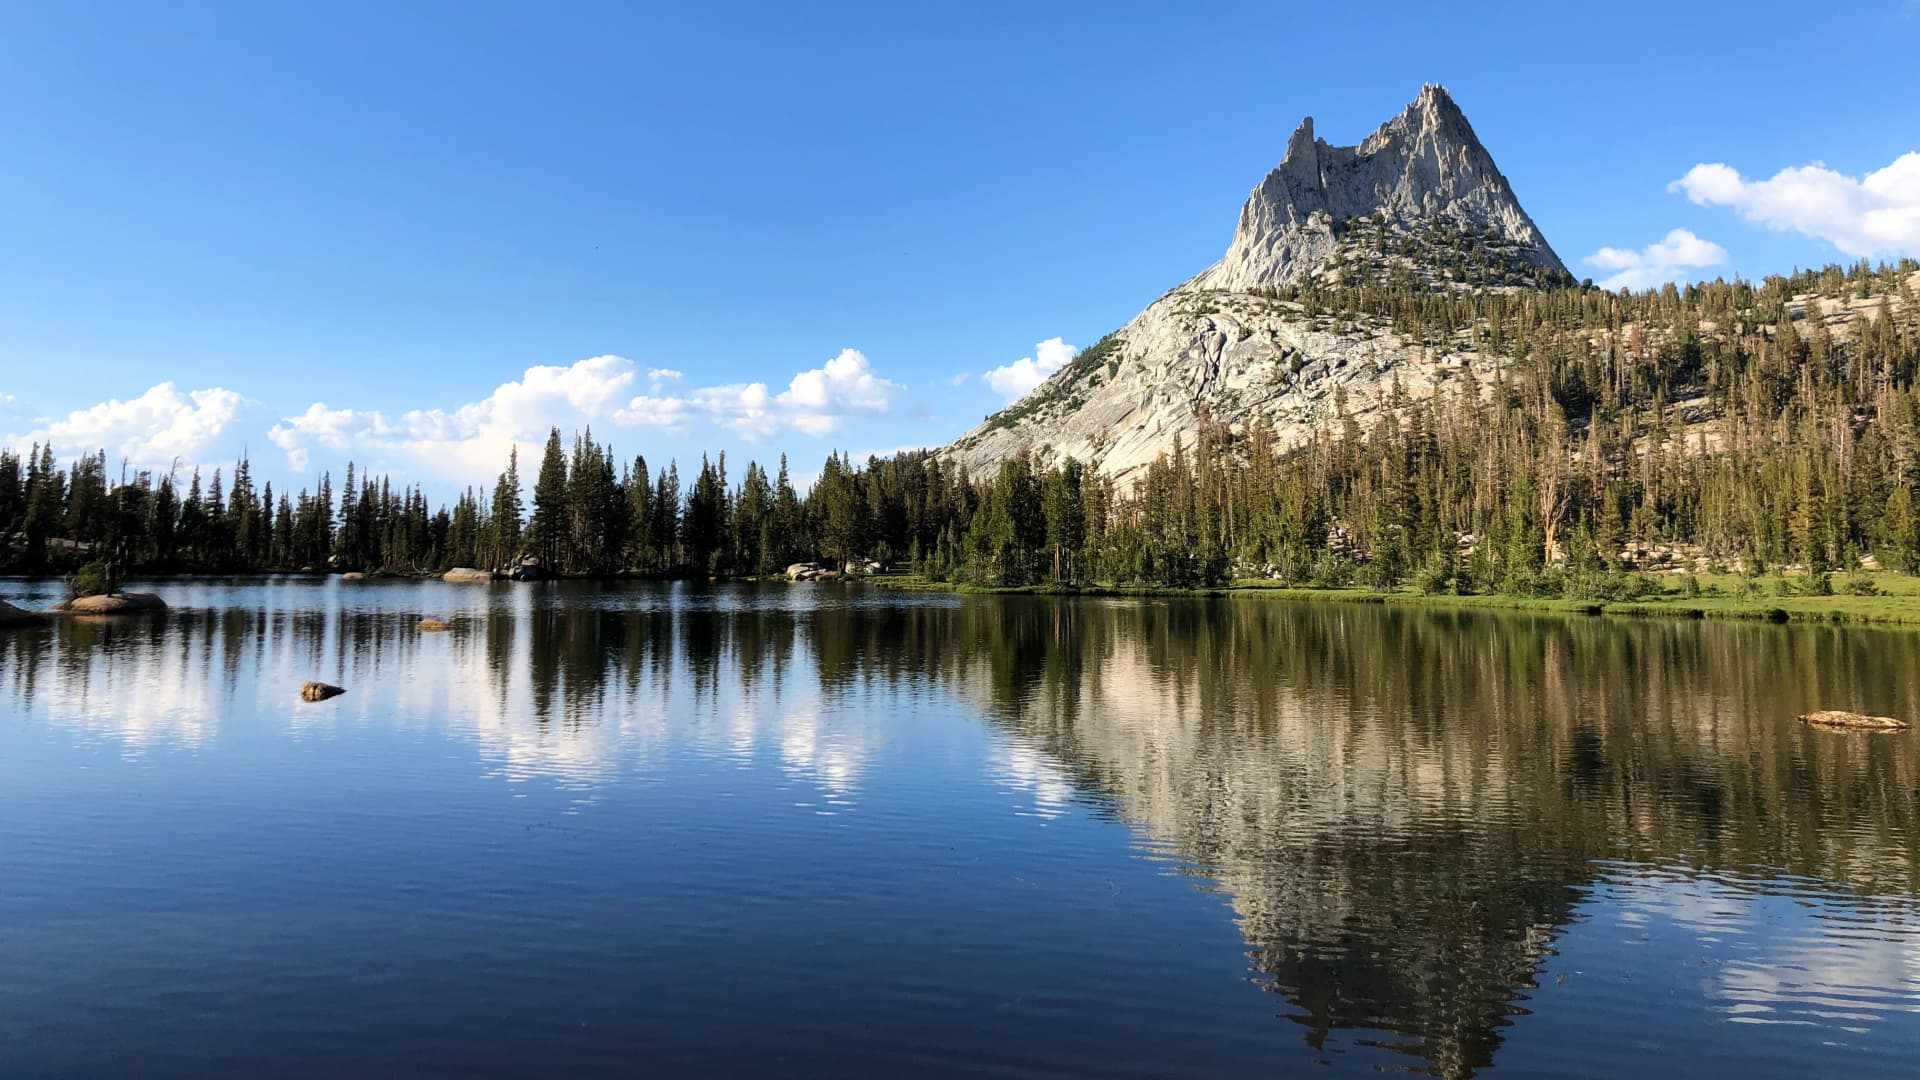 Upper Cathedral Lake in Yosemite National Park.